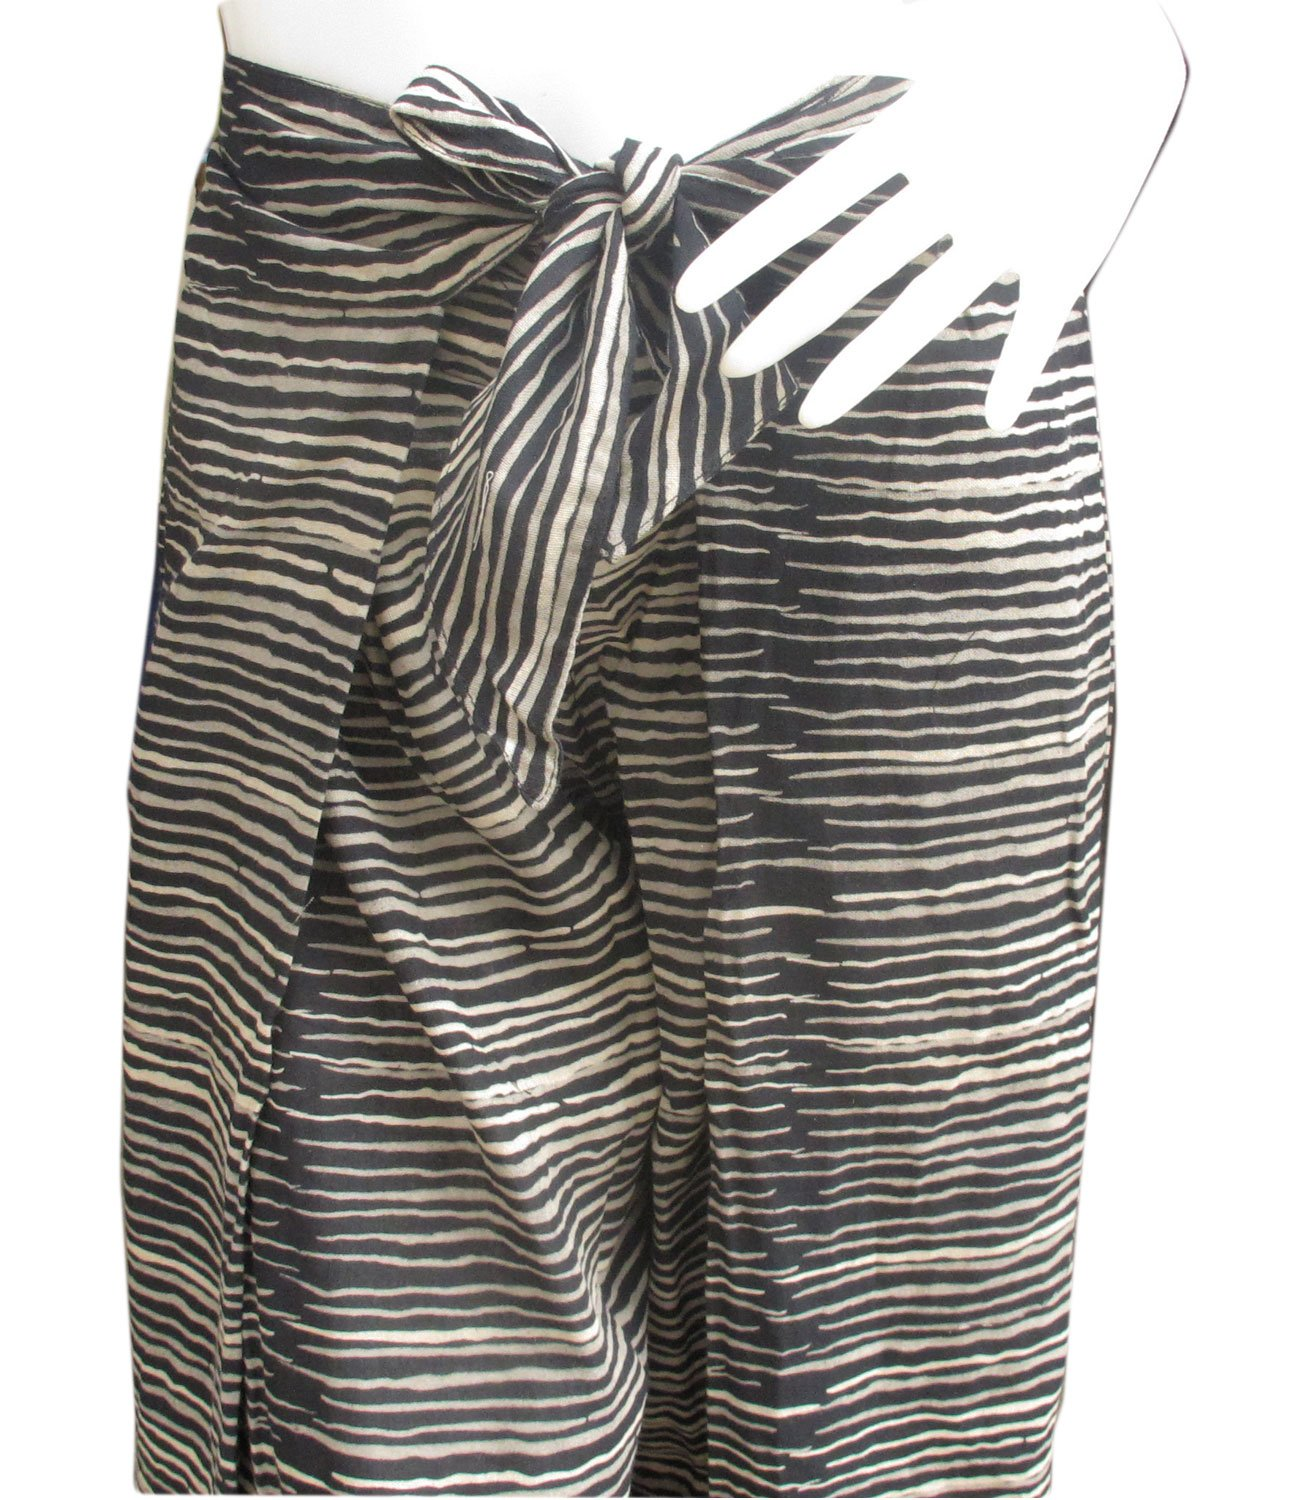 thai danai Presents.Free shpping Fashionable Fine Cotton Pant Tiger Printed Free Size Fit For 26-34 inches Long 40 inches by Thai (Image #3)